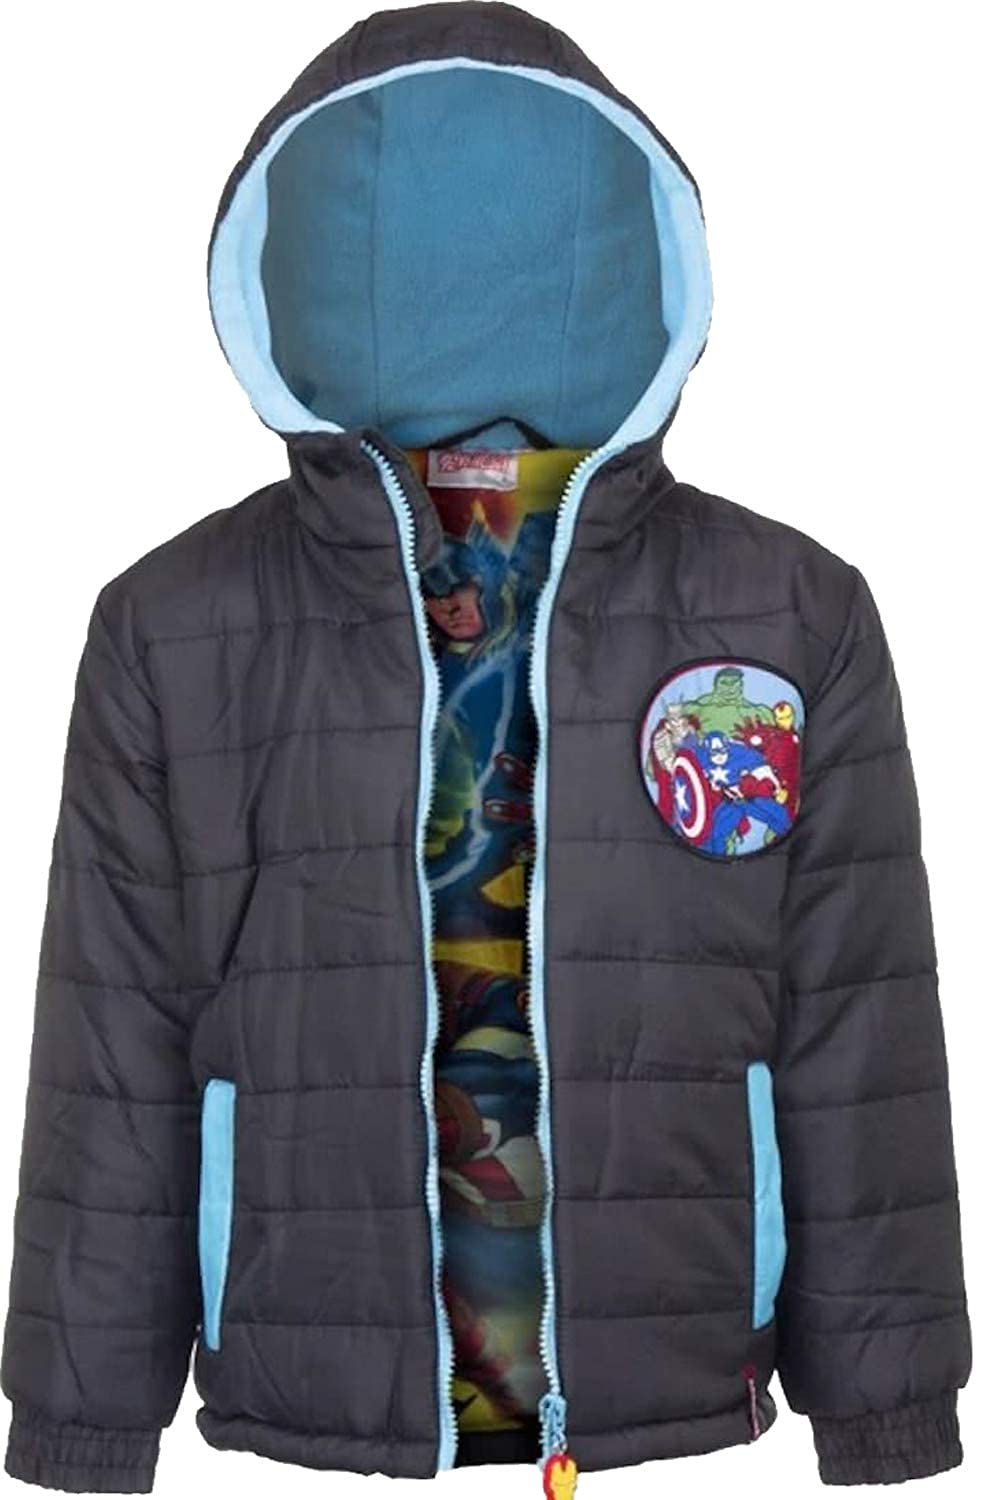 Marvel Avengers Kids Padded Winter Jacket